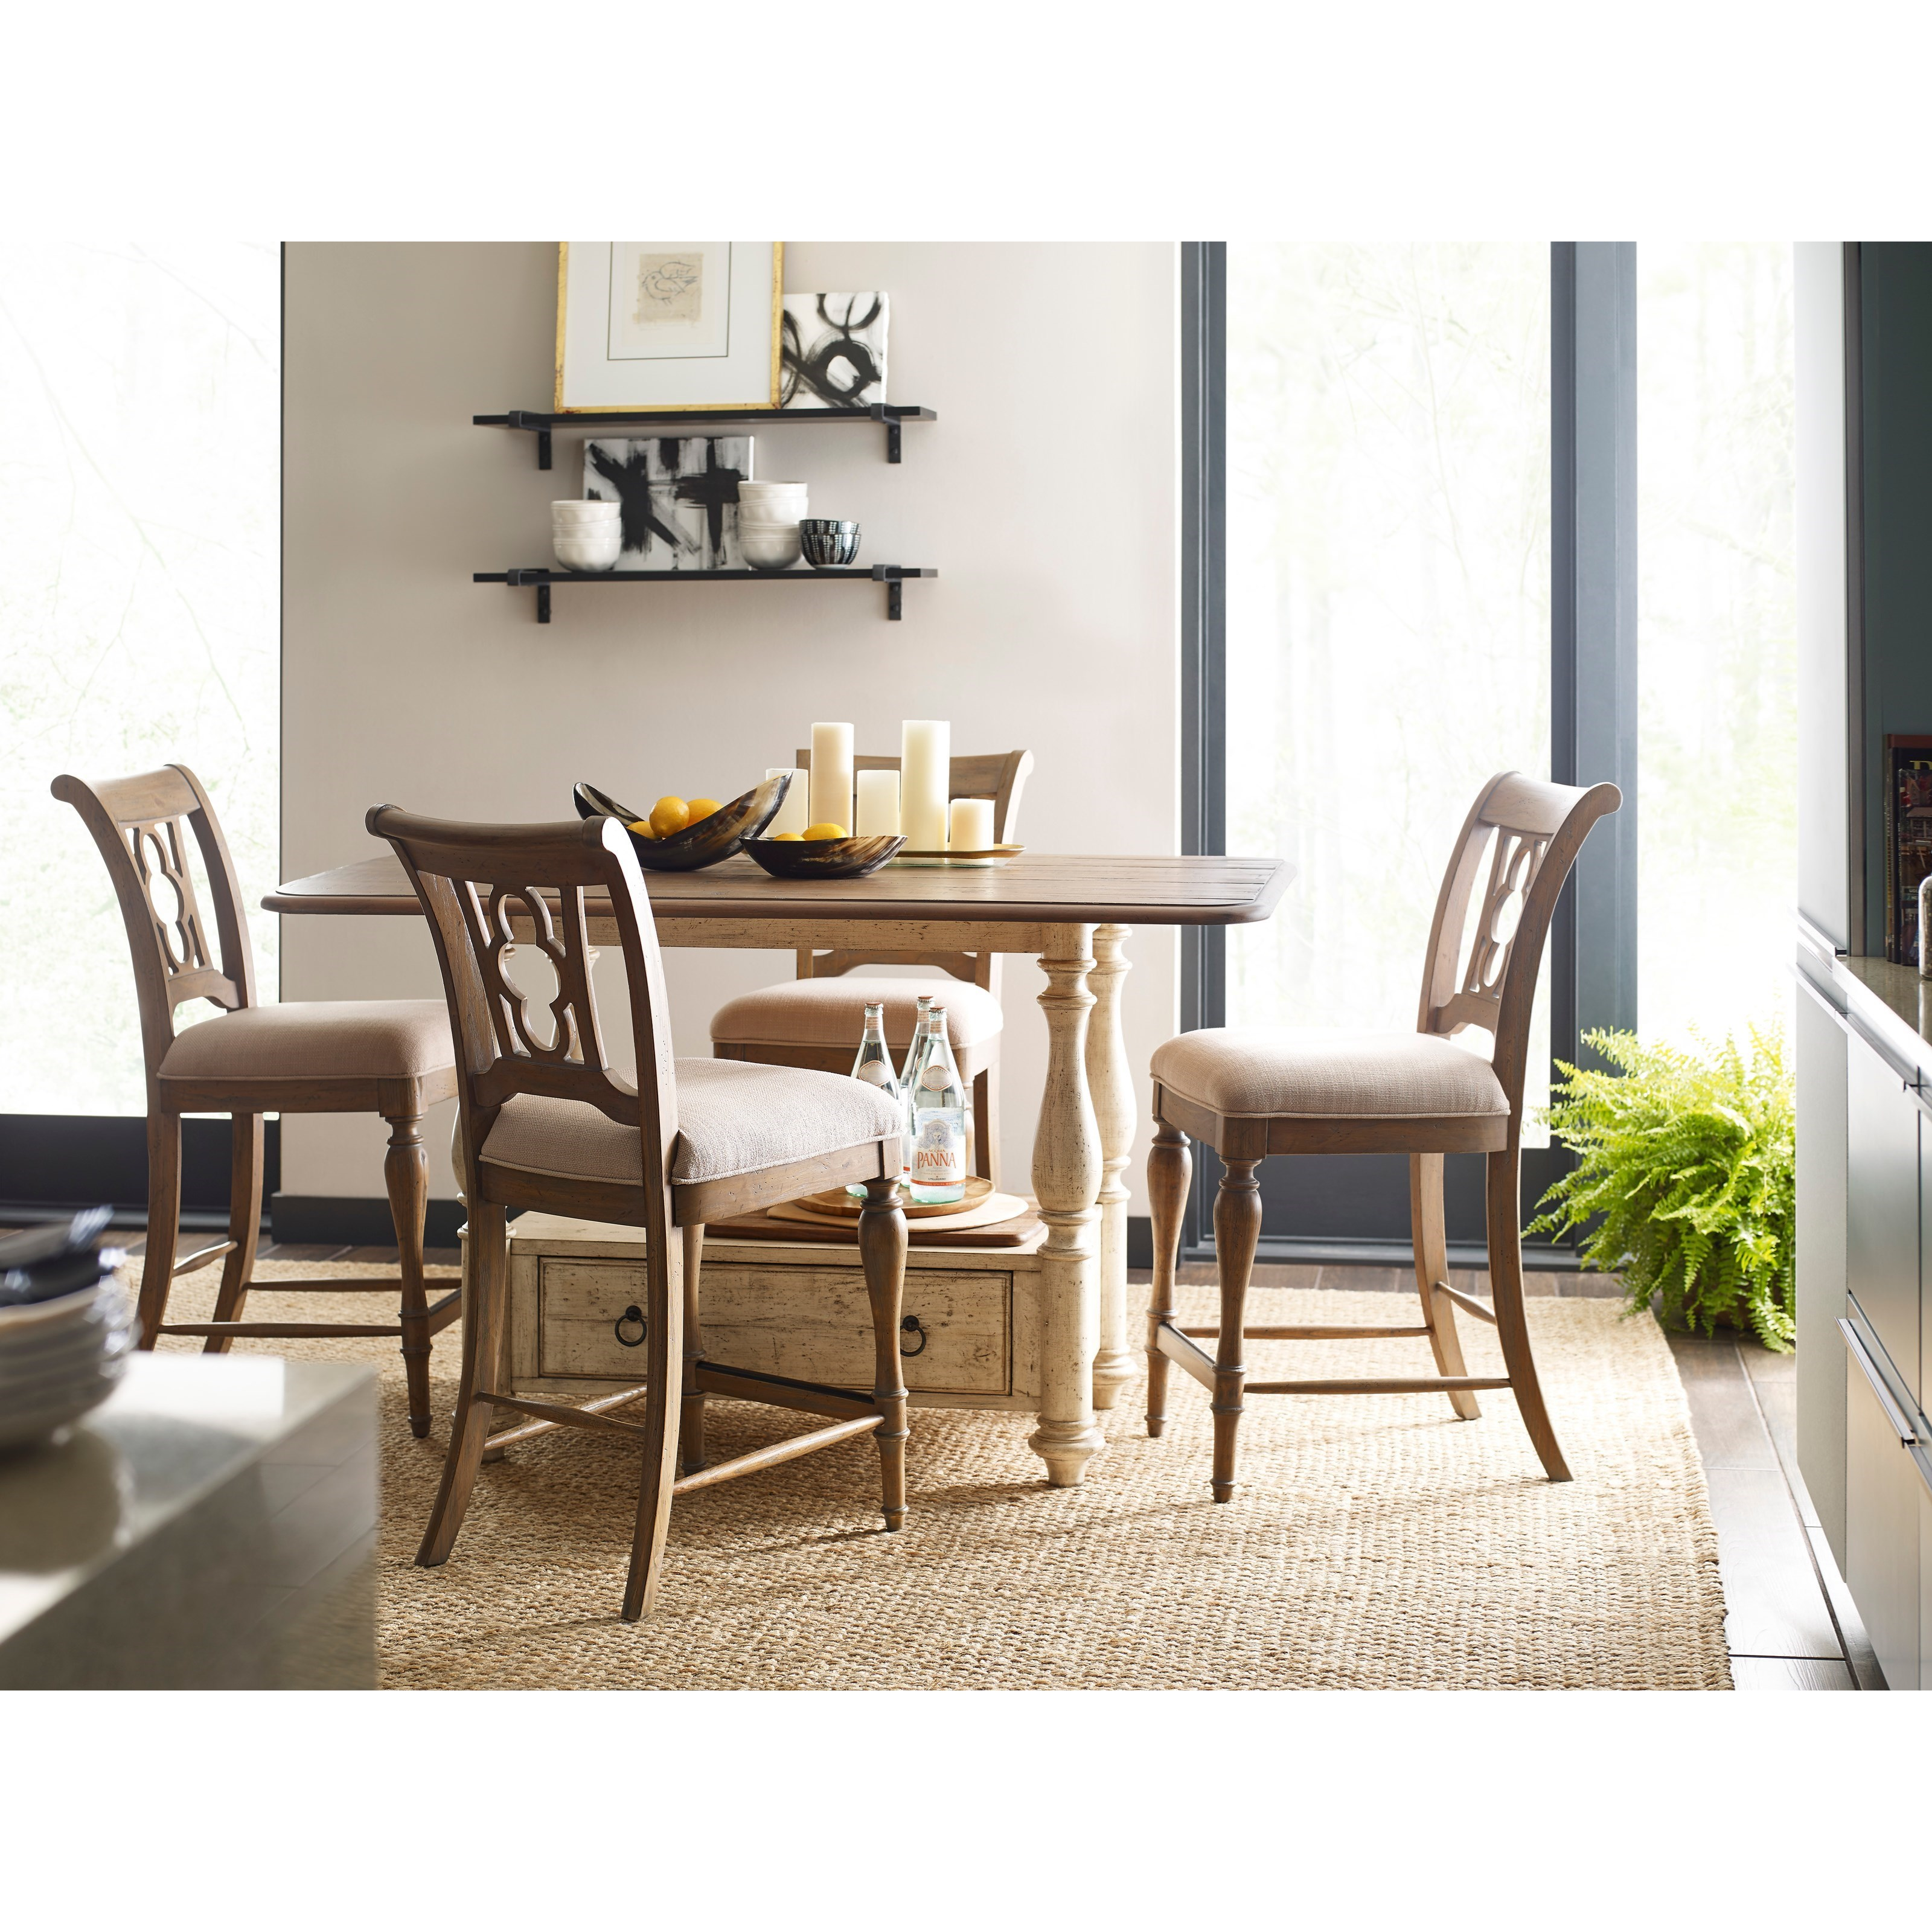 Kitchen Gathering Table 5 piece kitchen islandcottage tall gathering table and chair set by 5 piece kitchen island and chair set workwithnaturefo